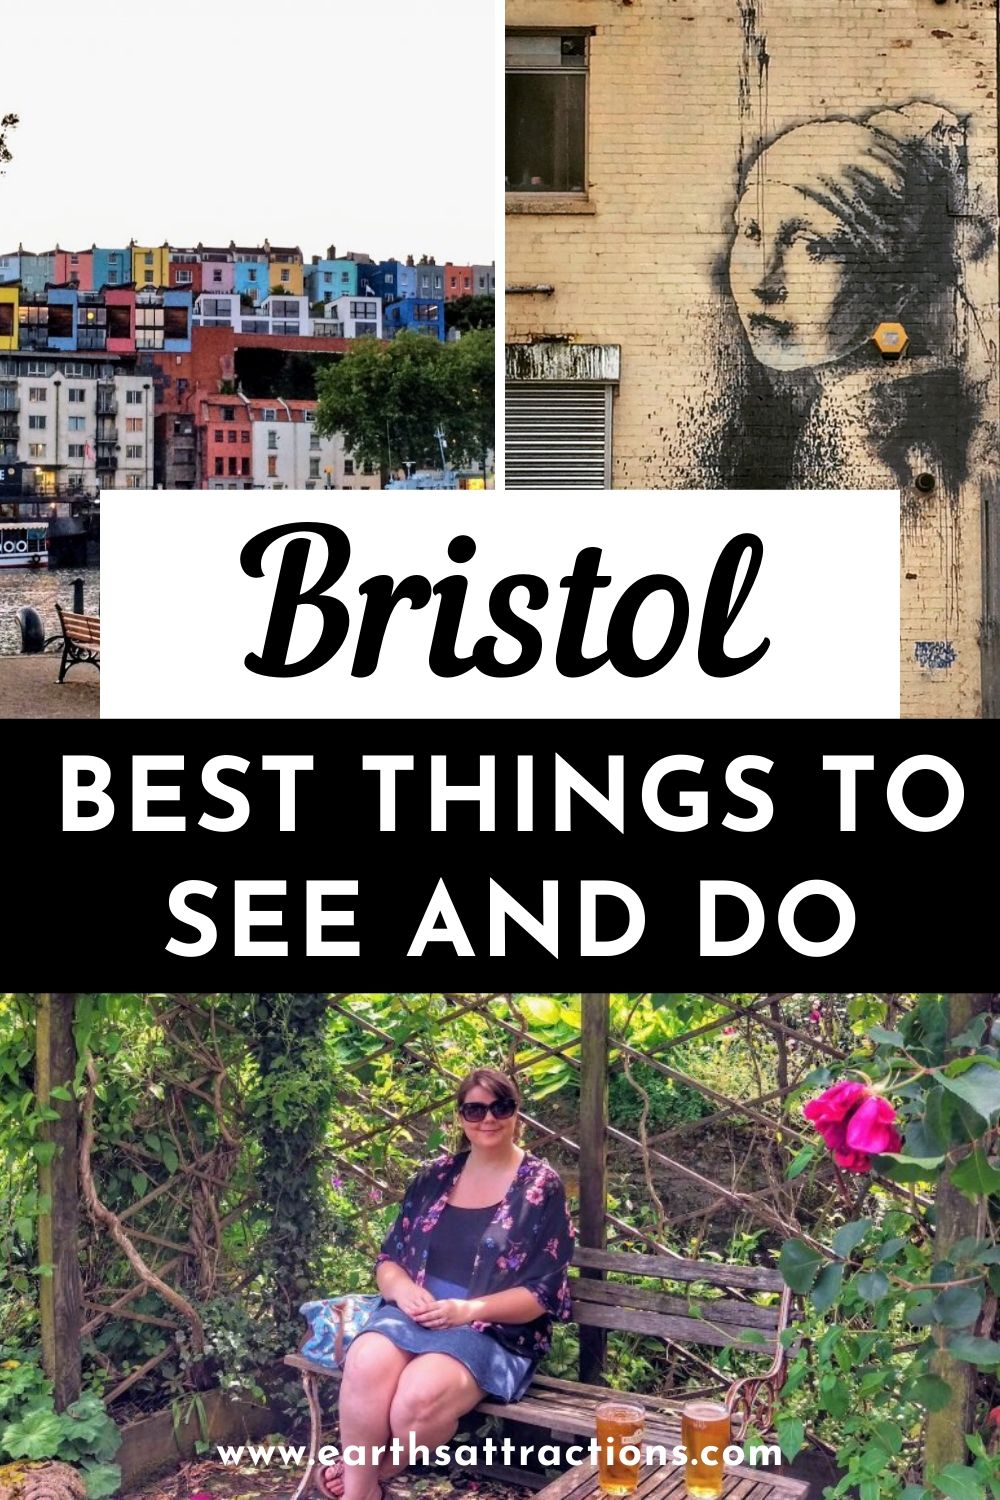 The best things to do in Bristol, UK. Use this insider's guide to Bristol, England to plan your Bristol holiday. Create your Bristol bucketlist - make sure you include Bansky's art, the Cabot Tower, Clifton Suspension Bridge and all the other great attractions in Bristol on your itinerary. #bristol #uk #england #bansky #traveldestinations #earthsattractions